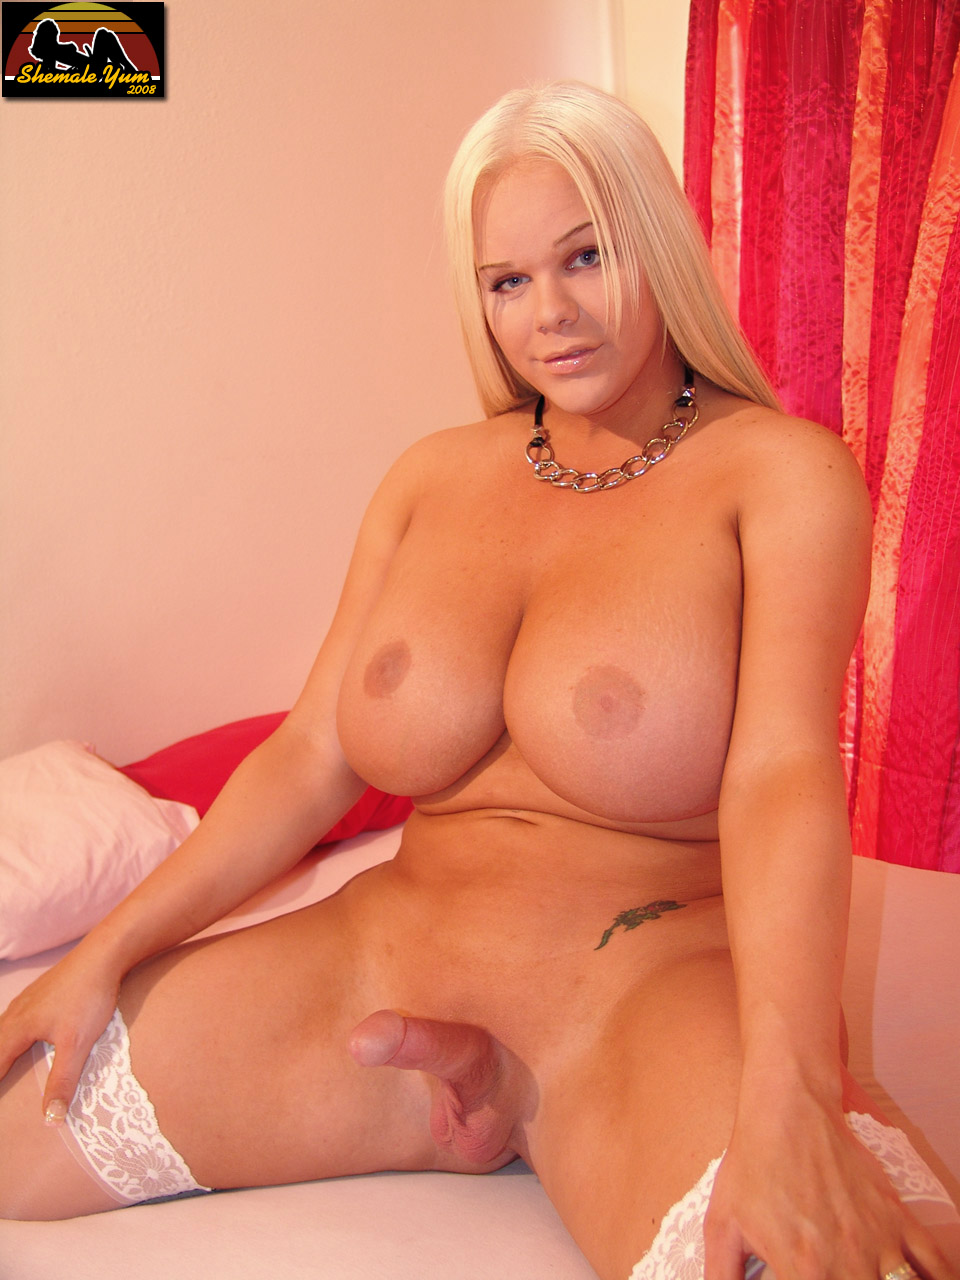 from Collin hot naked tranny babes